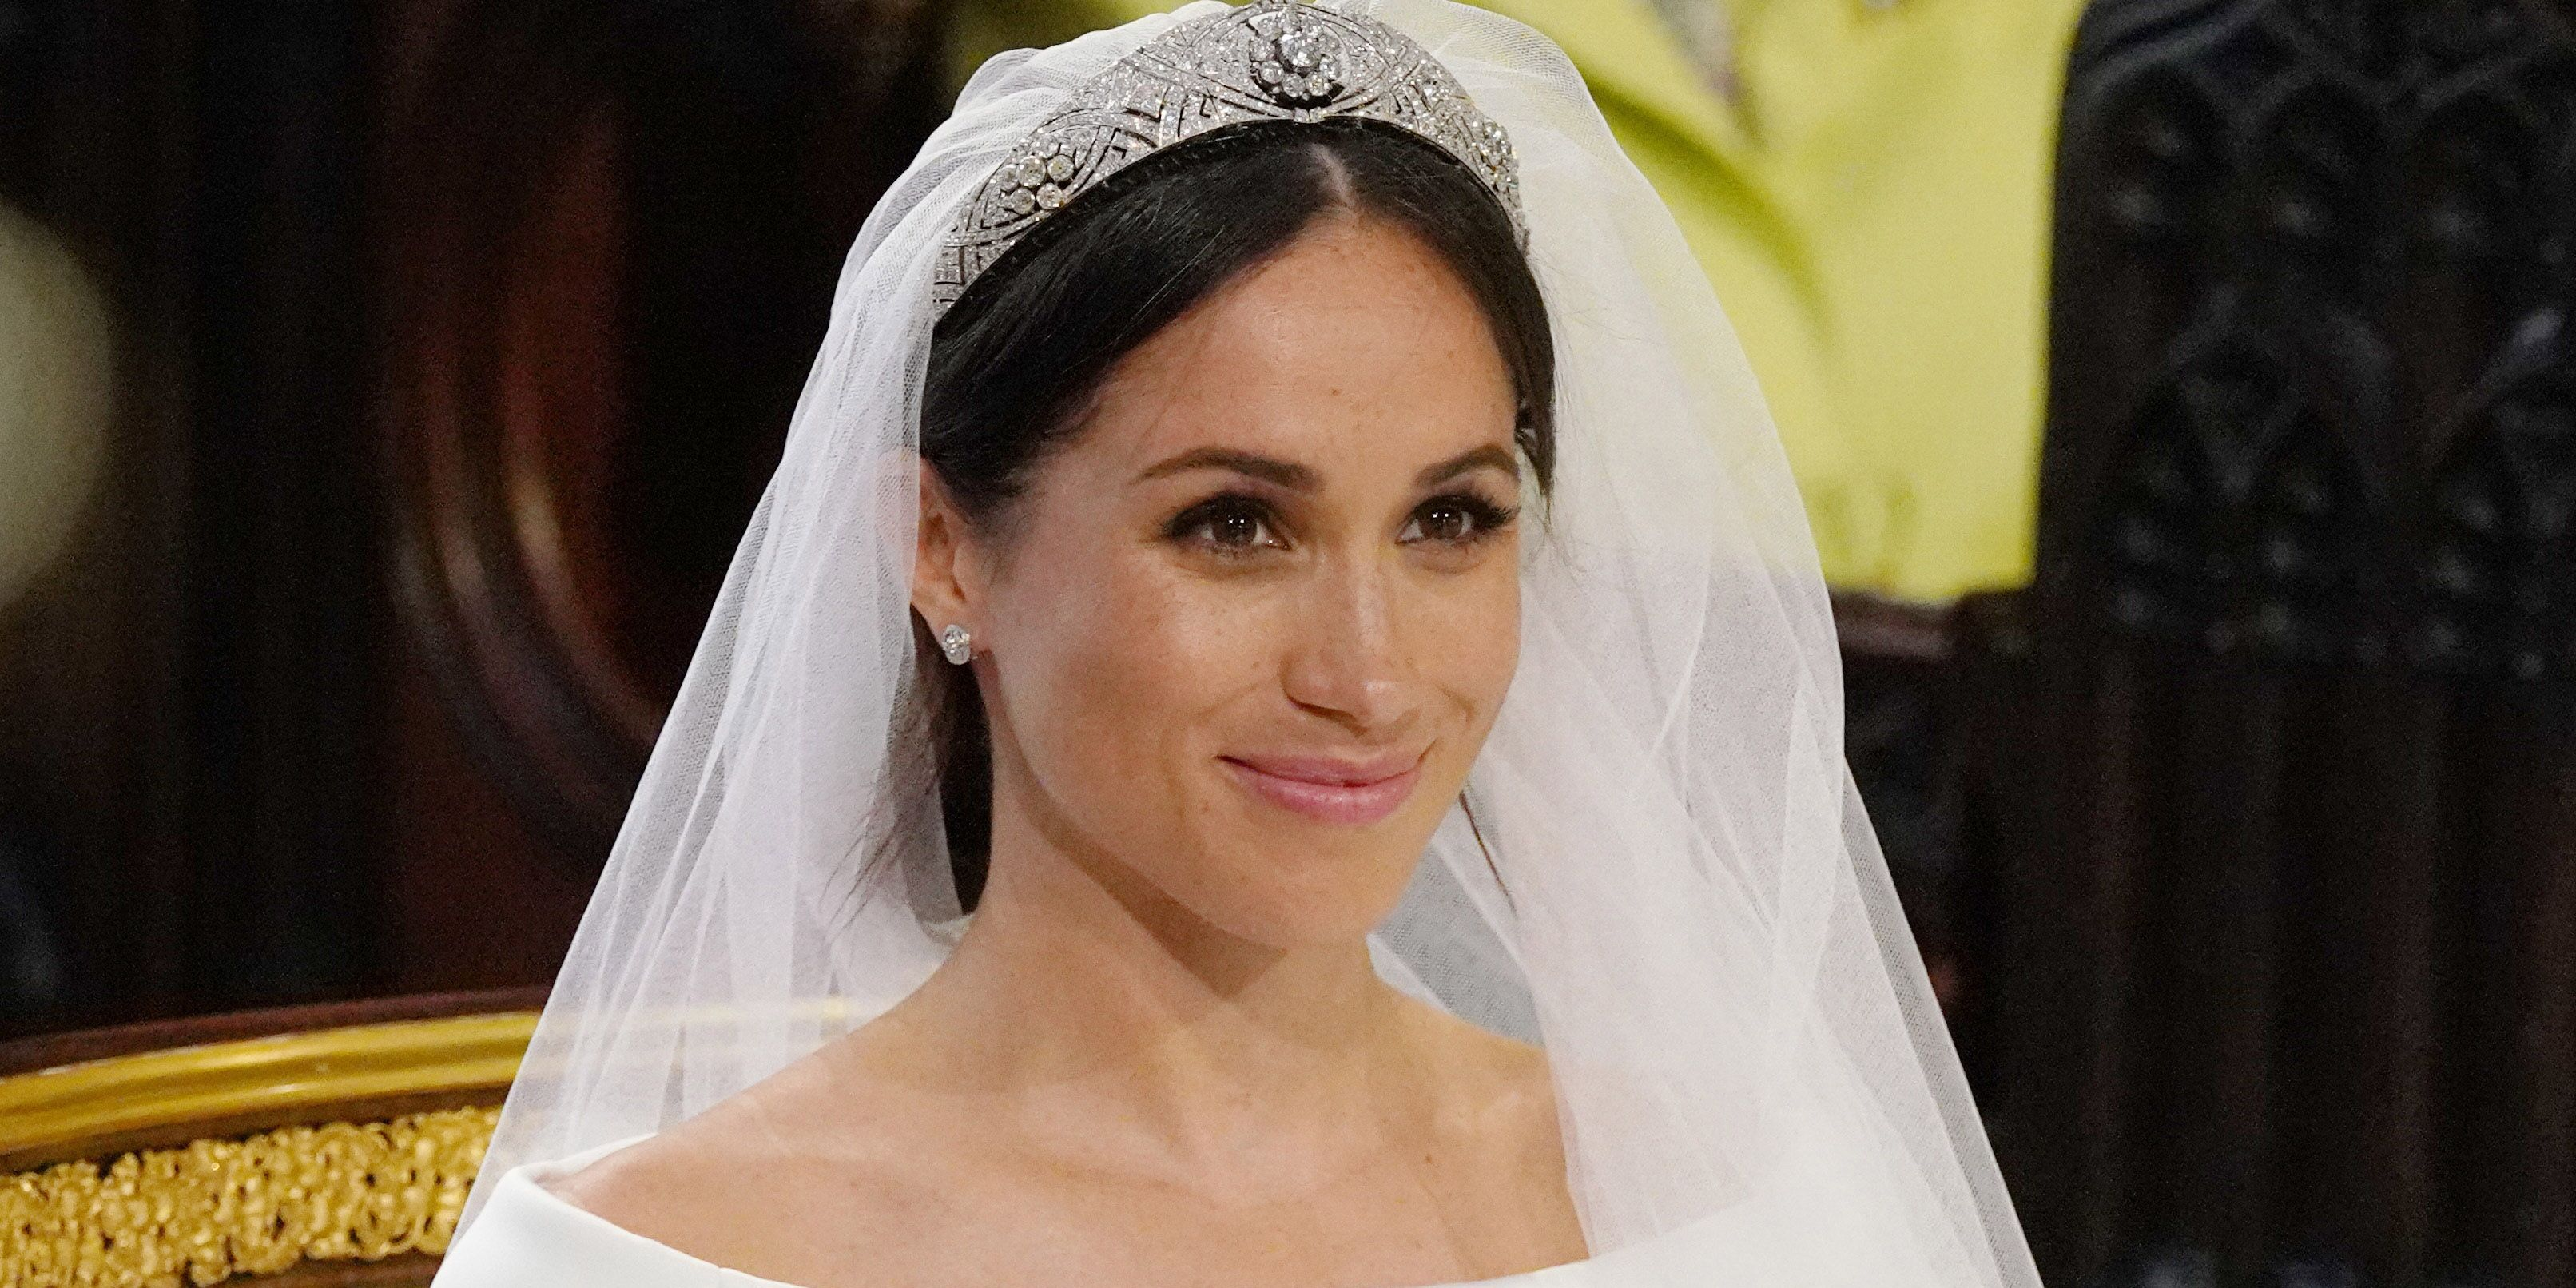 Meghan Markle, Givenchy wedding dress